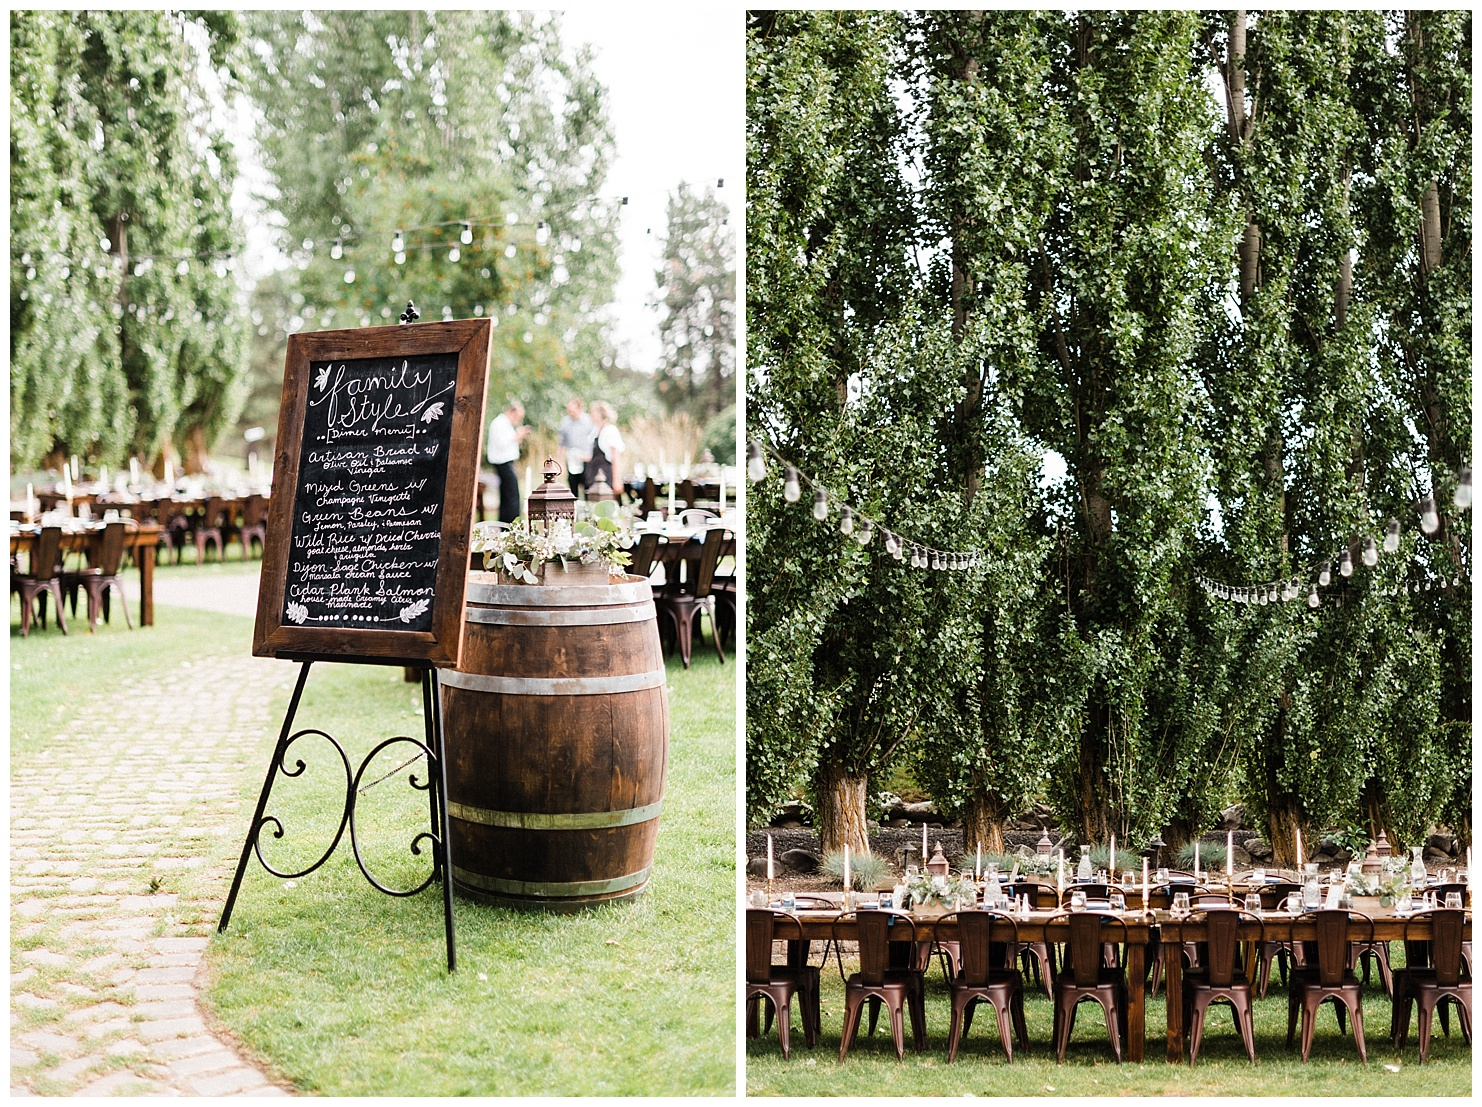 Photos of wedding reception details at Beacon Hill in Spokane, Washington by Forthright Photo